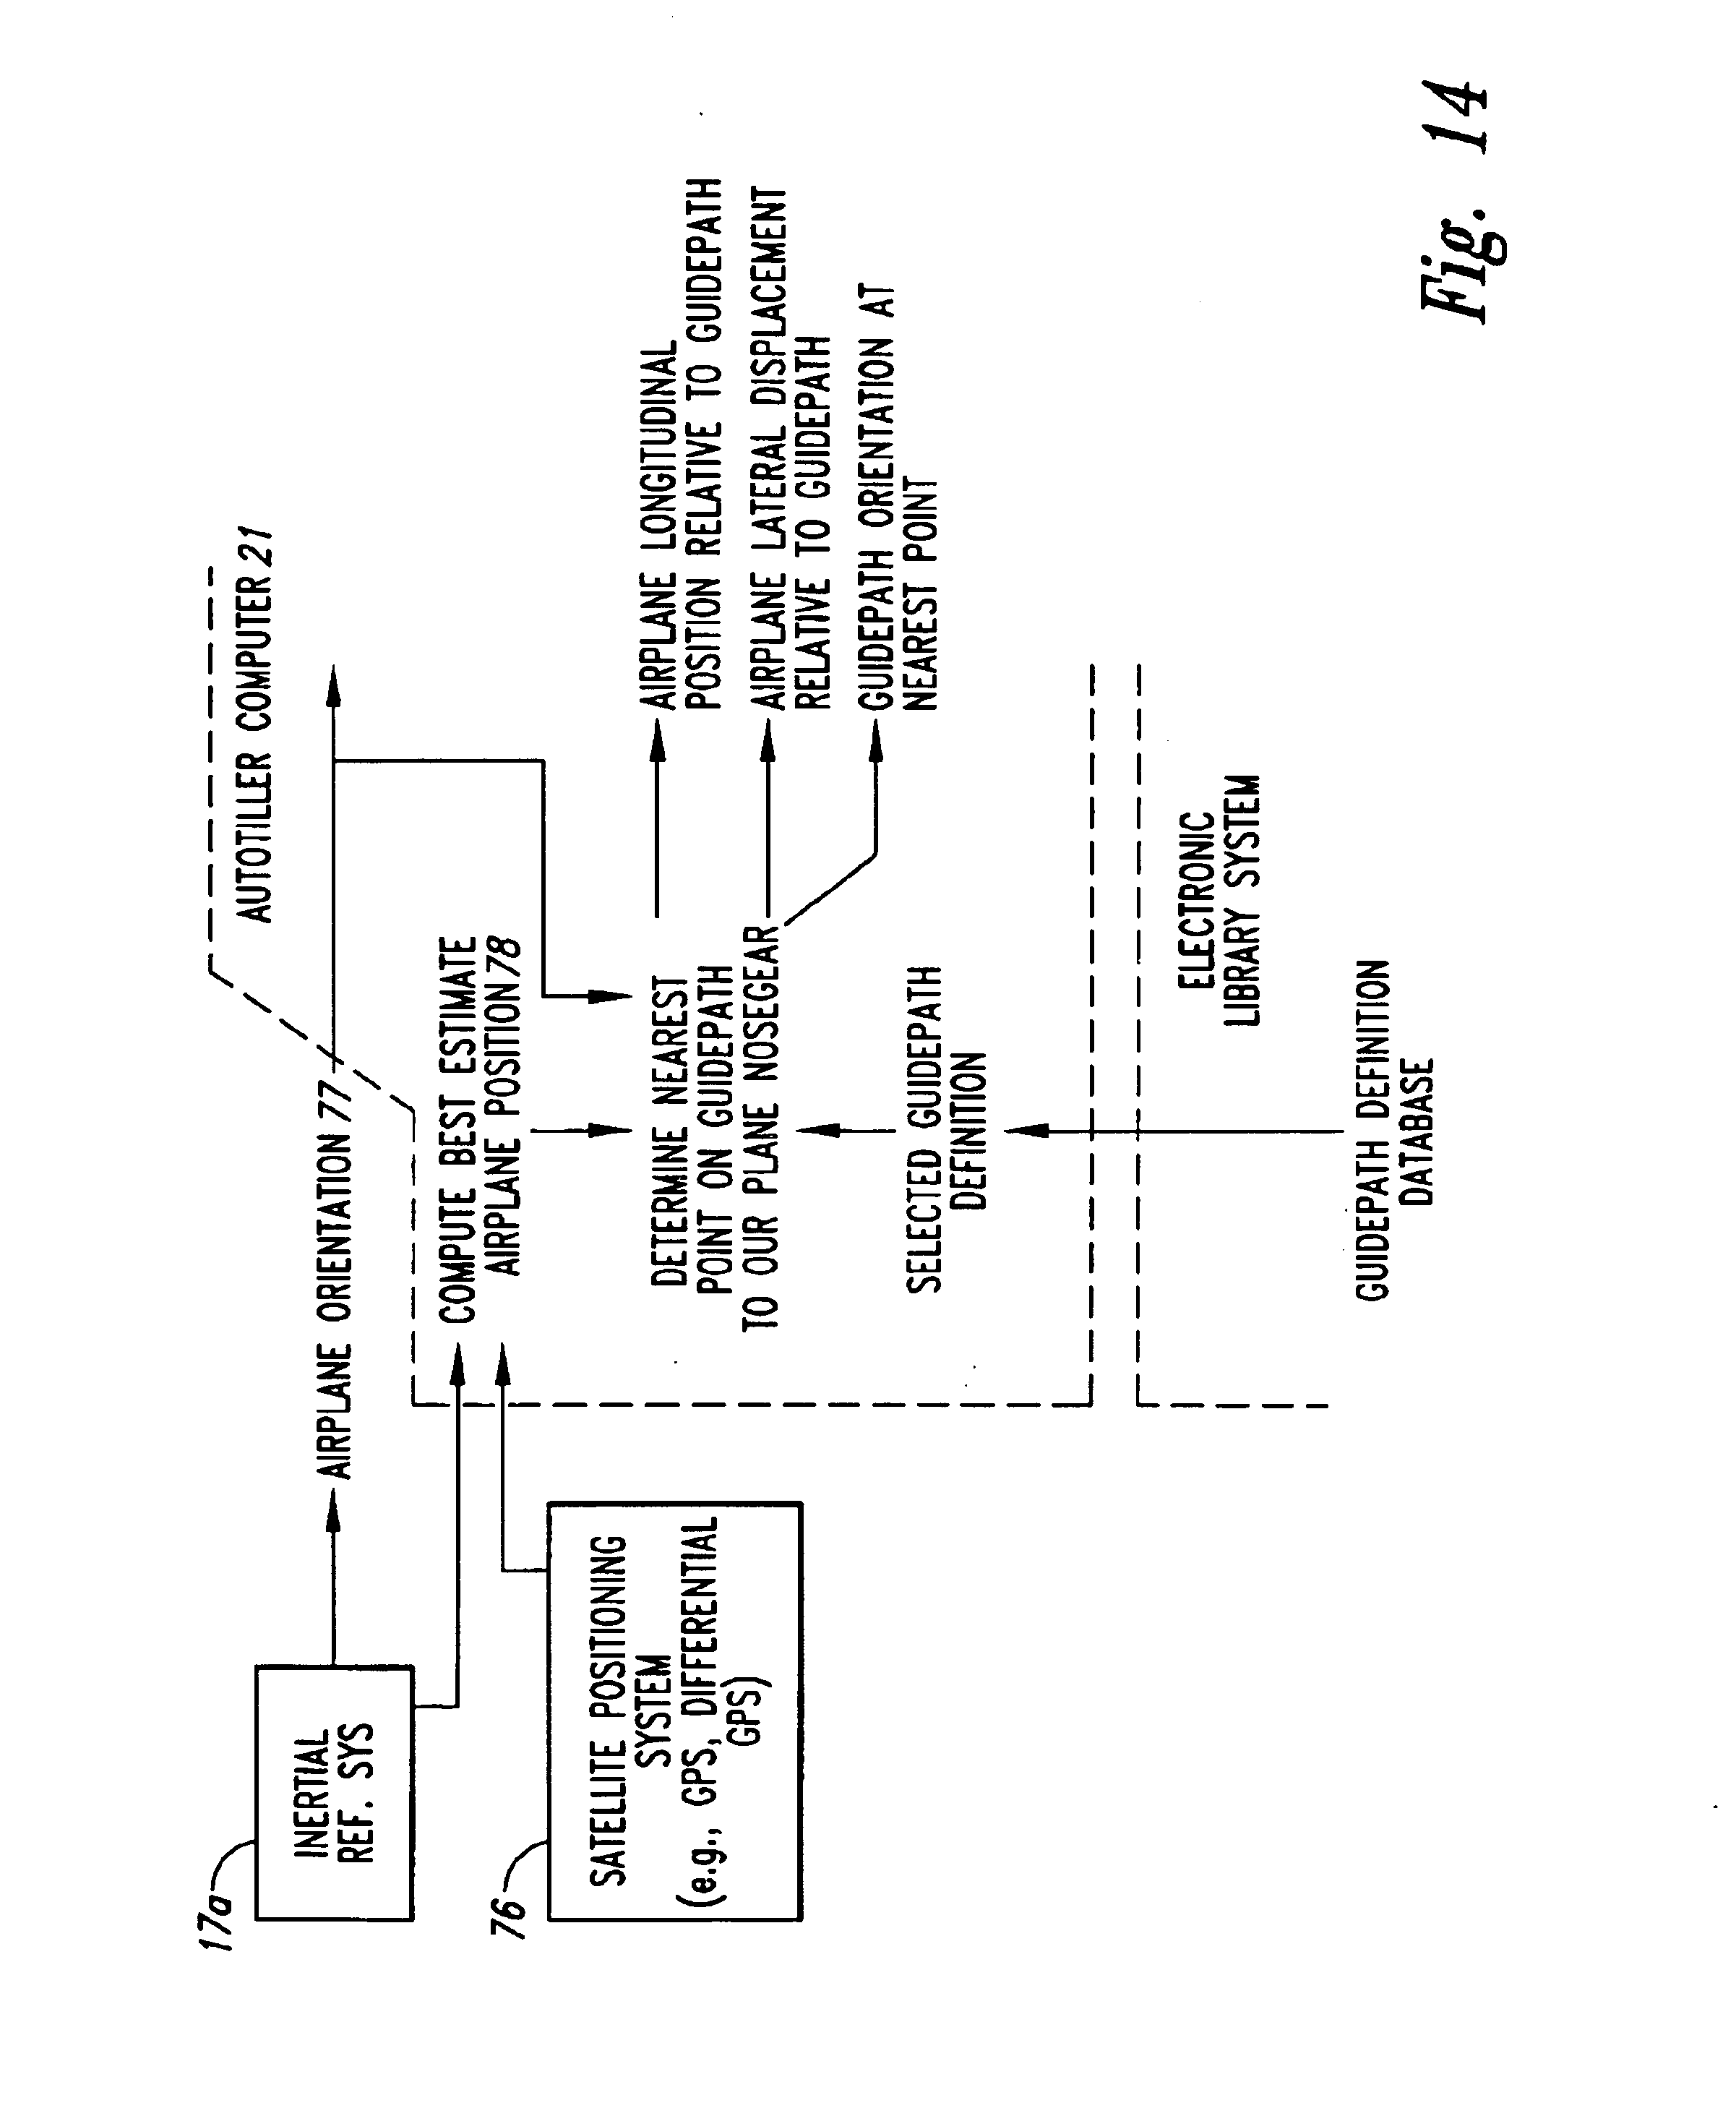 patent us autotiller control system for aircraft google patent drawing